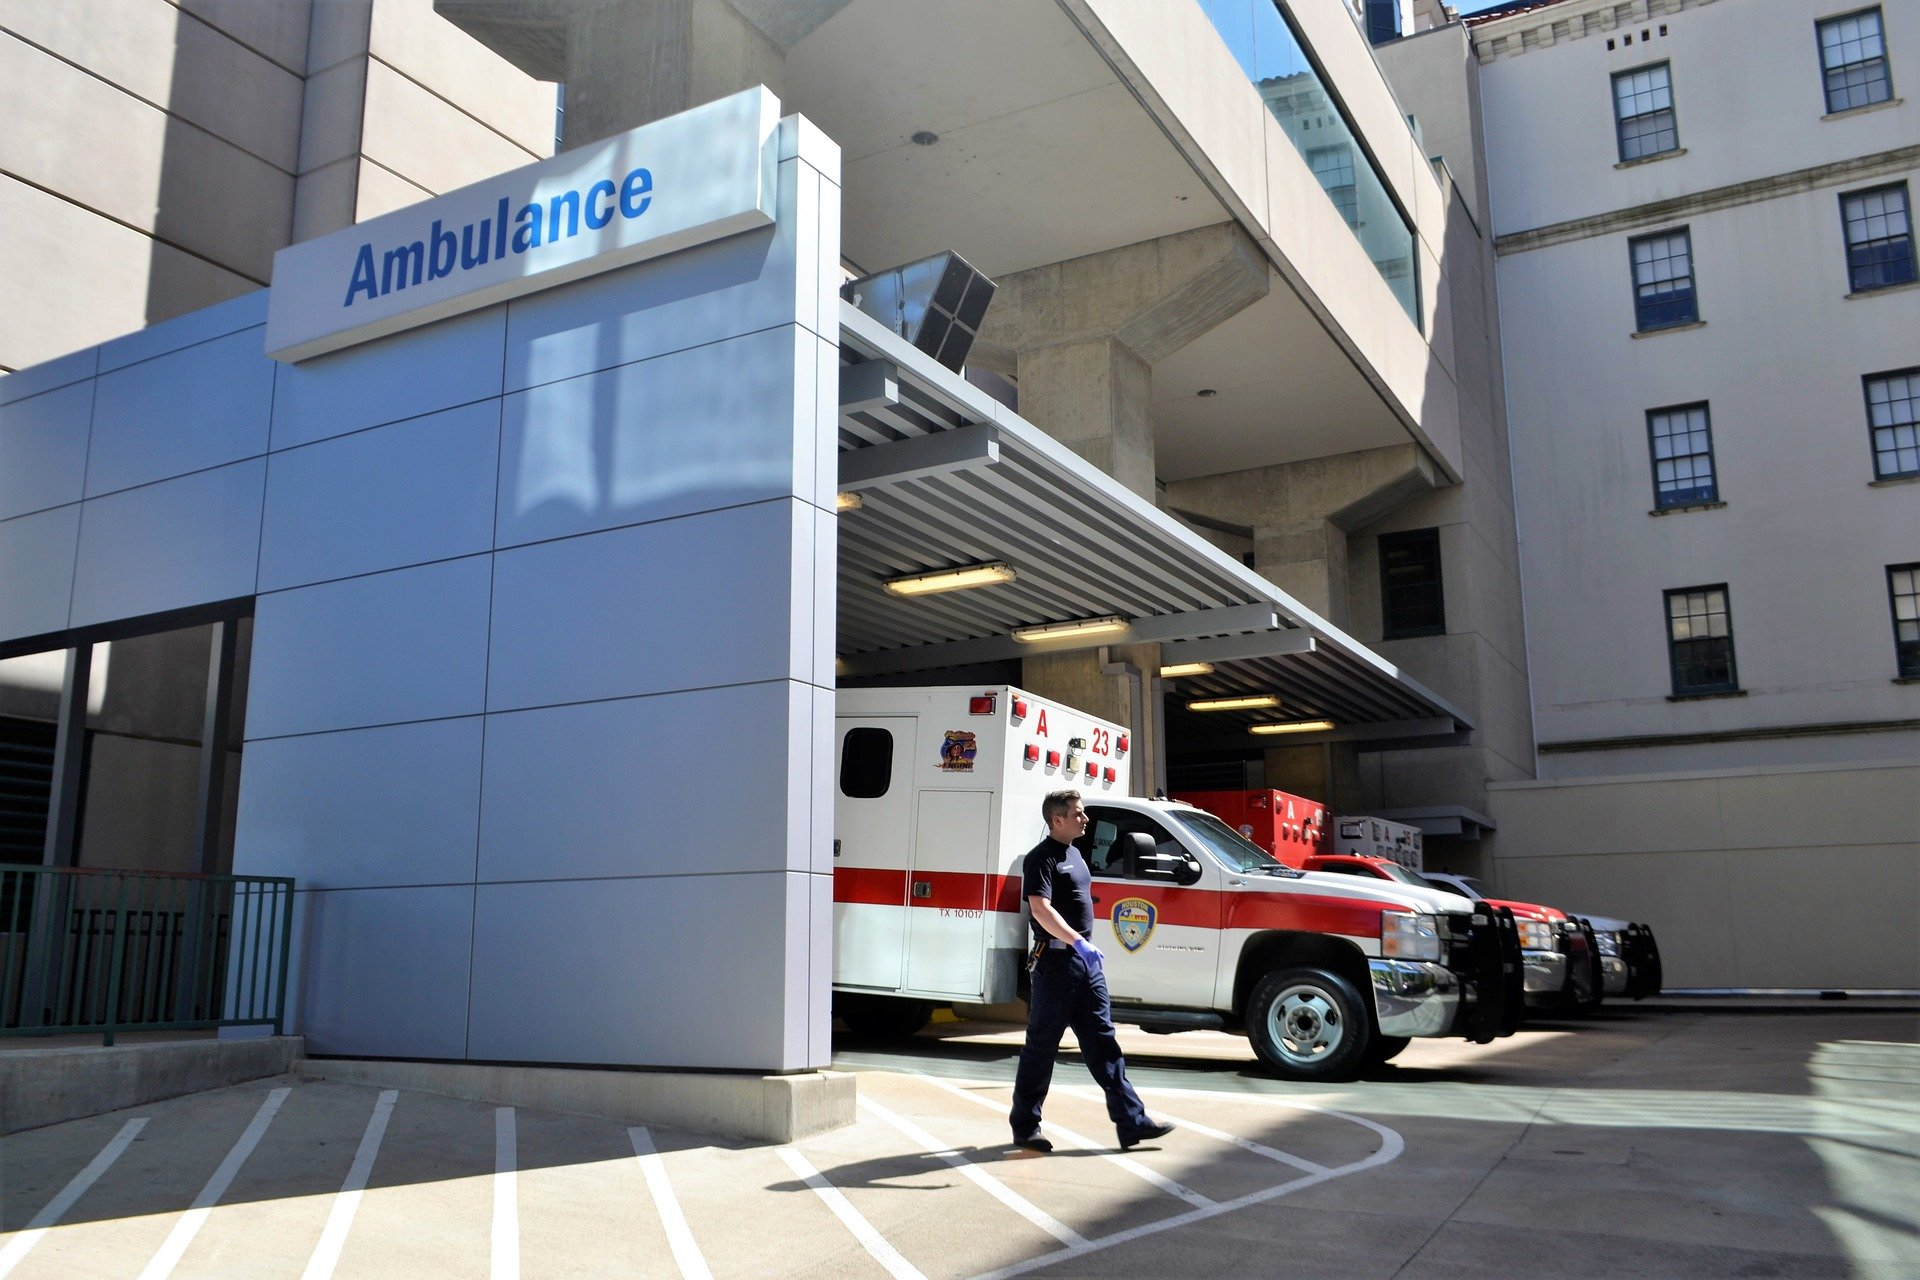 Pictured - An image of an emergency room with ambulances and a first responder outside | Source: Pixabay